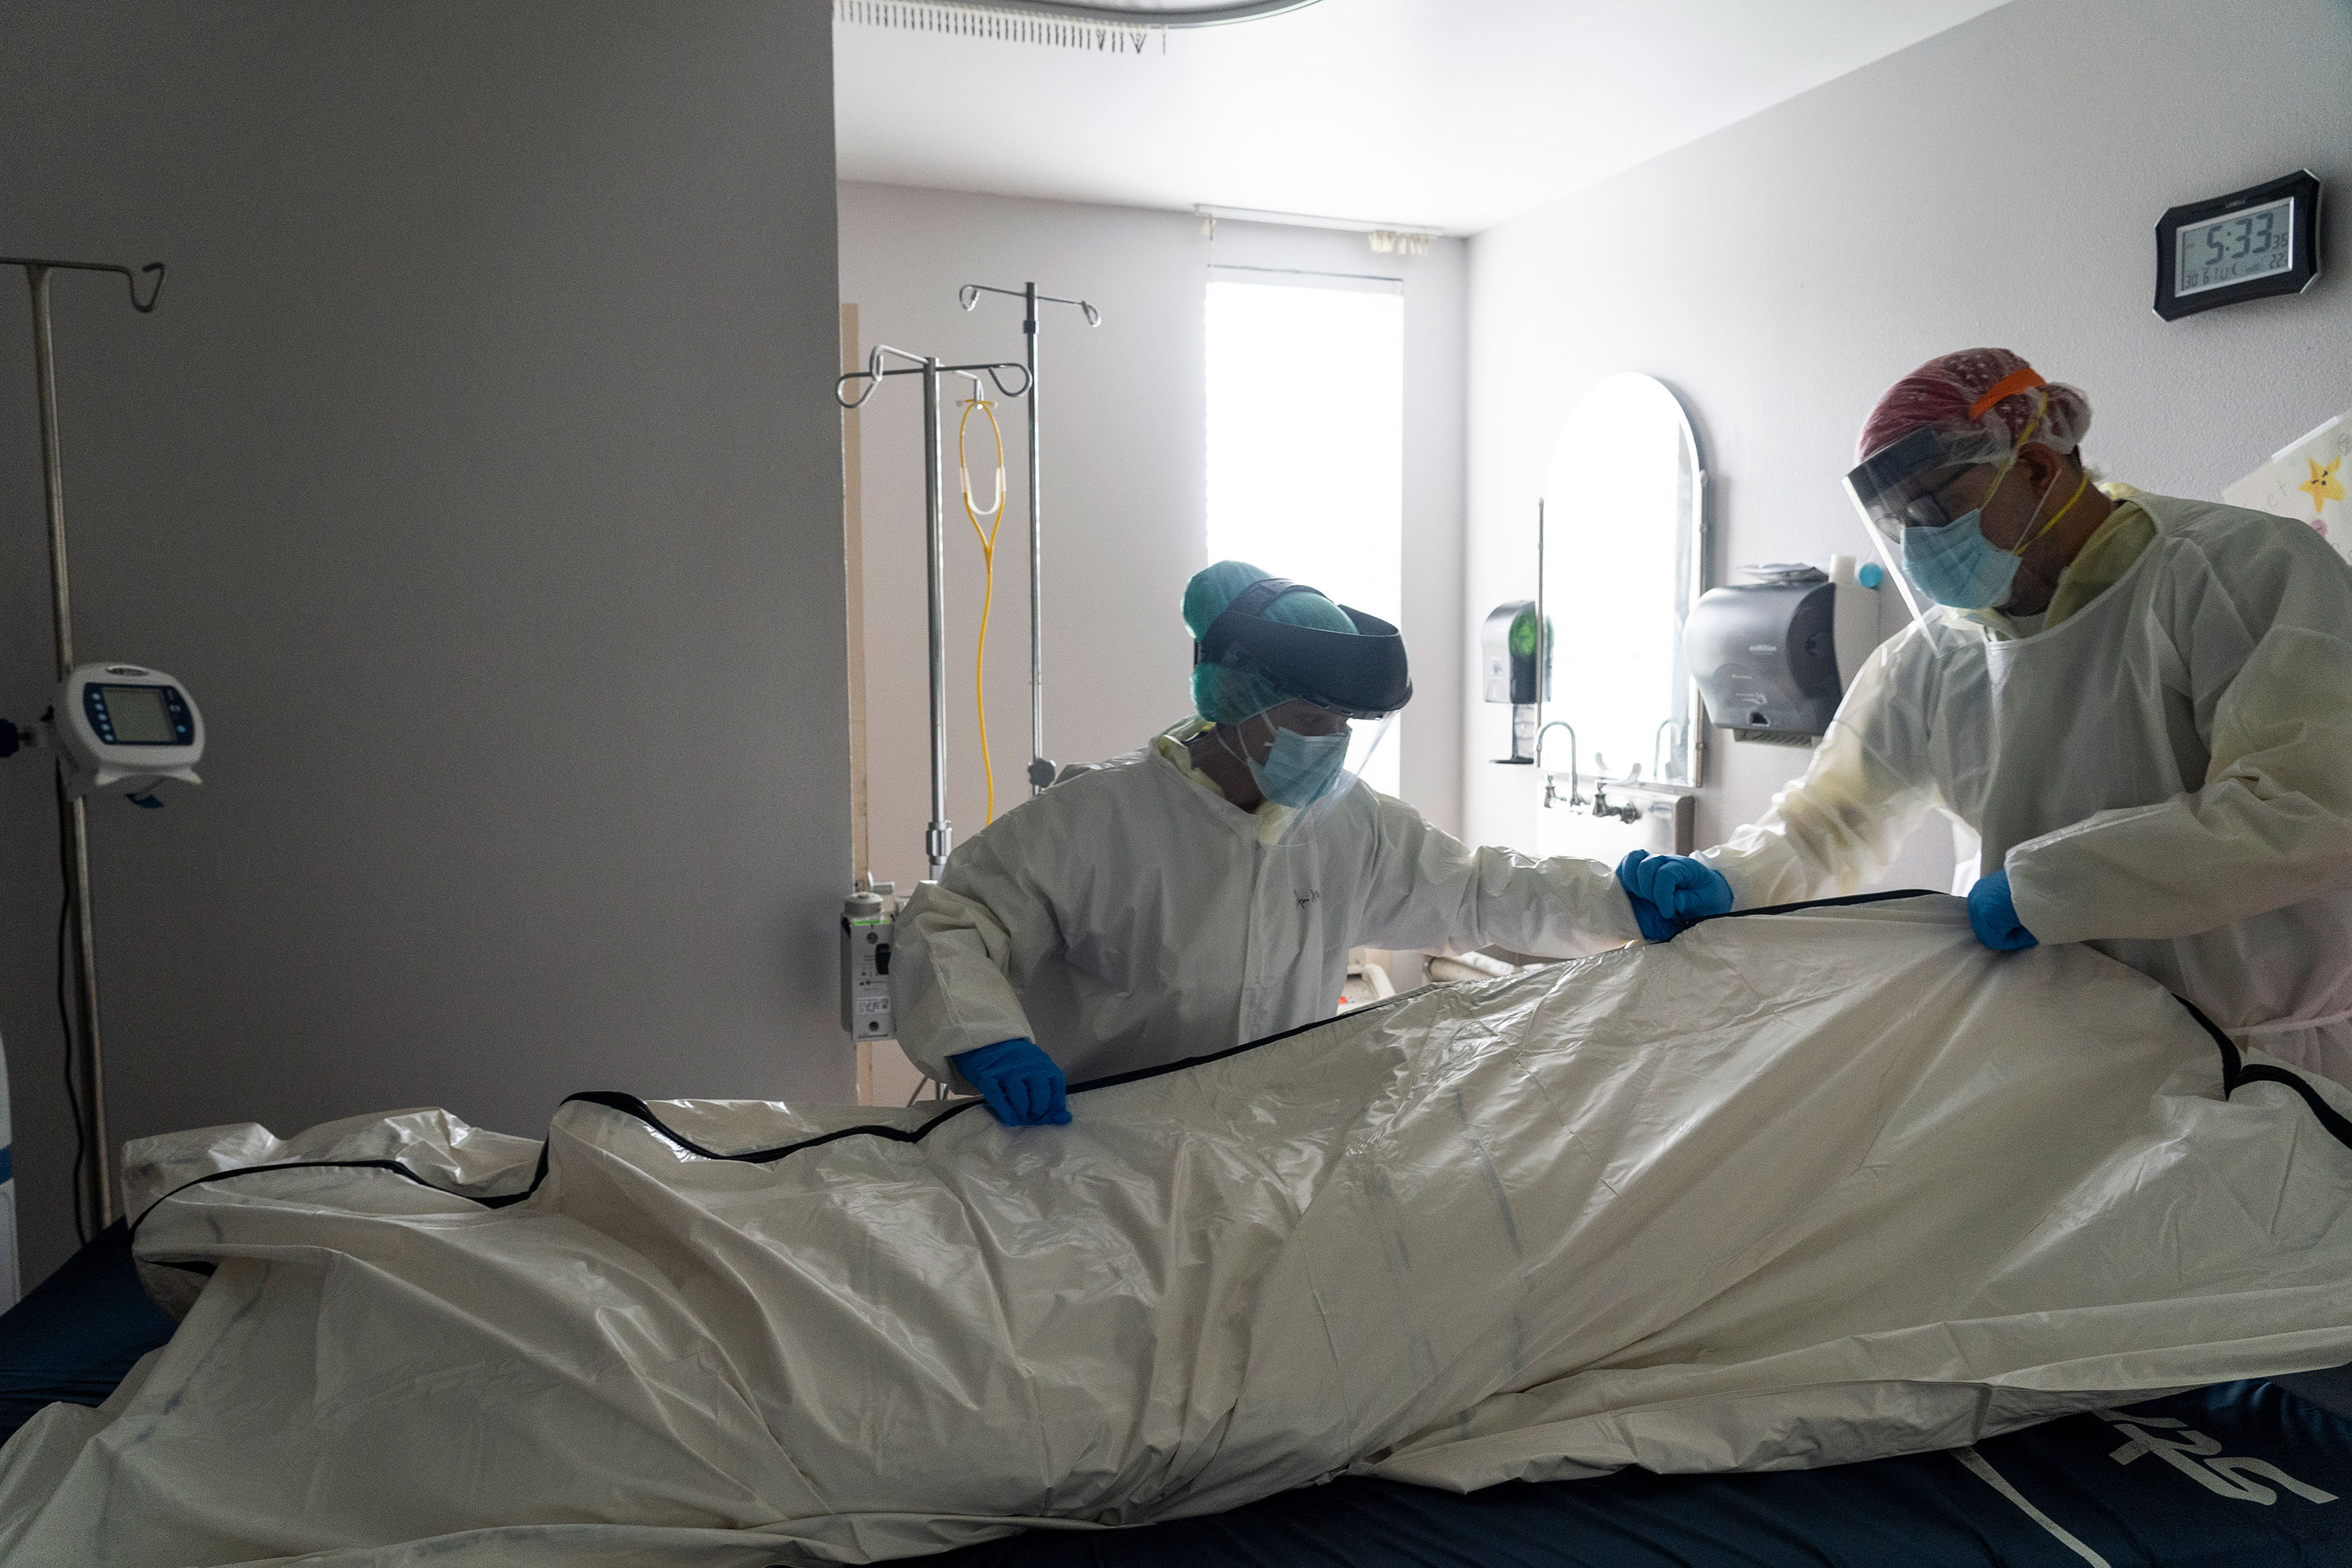 Medical staff wrap a deceased patient in a body bag in the Covid-19 intensive care unit at the United Memorial Medical Center on June 30 in Houston, Texas.